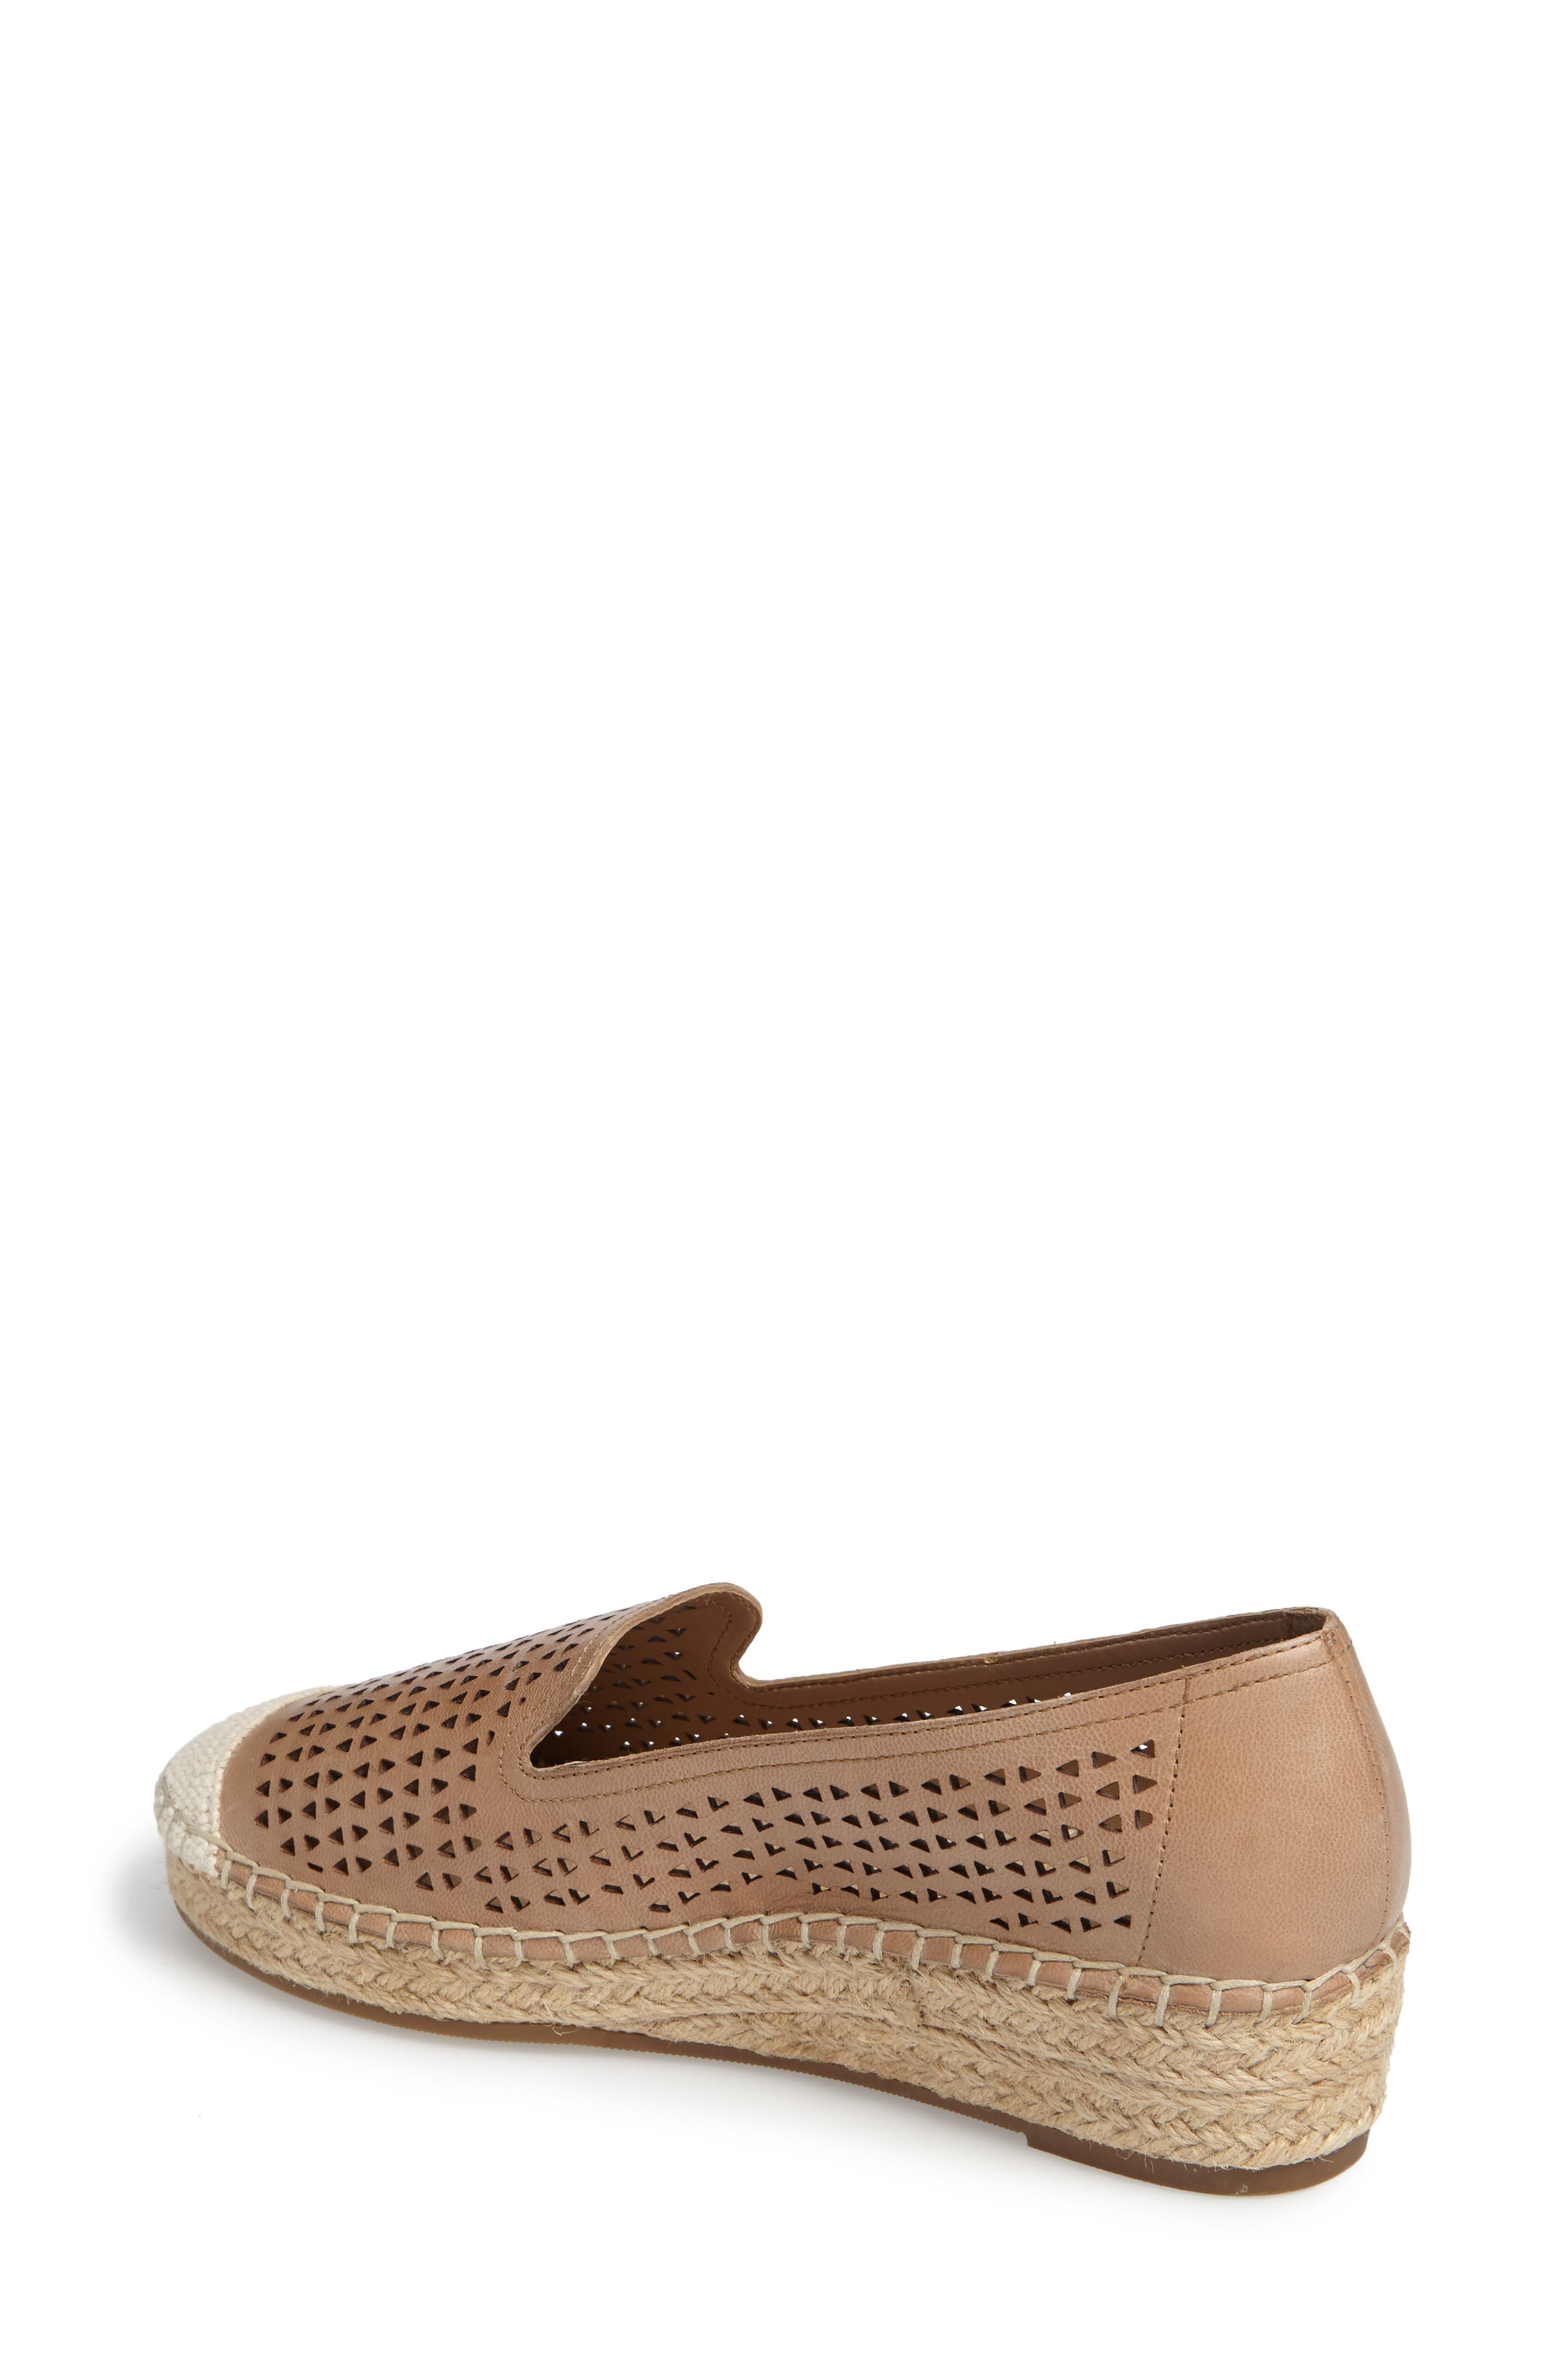 Channing Cutout Espadrille Loafer,                             Alternate thumbnail 2, color,                             Saddle Leather